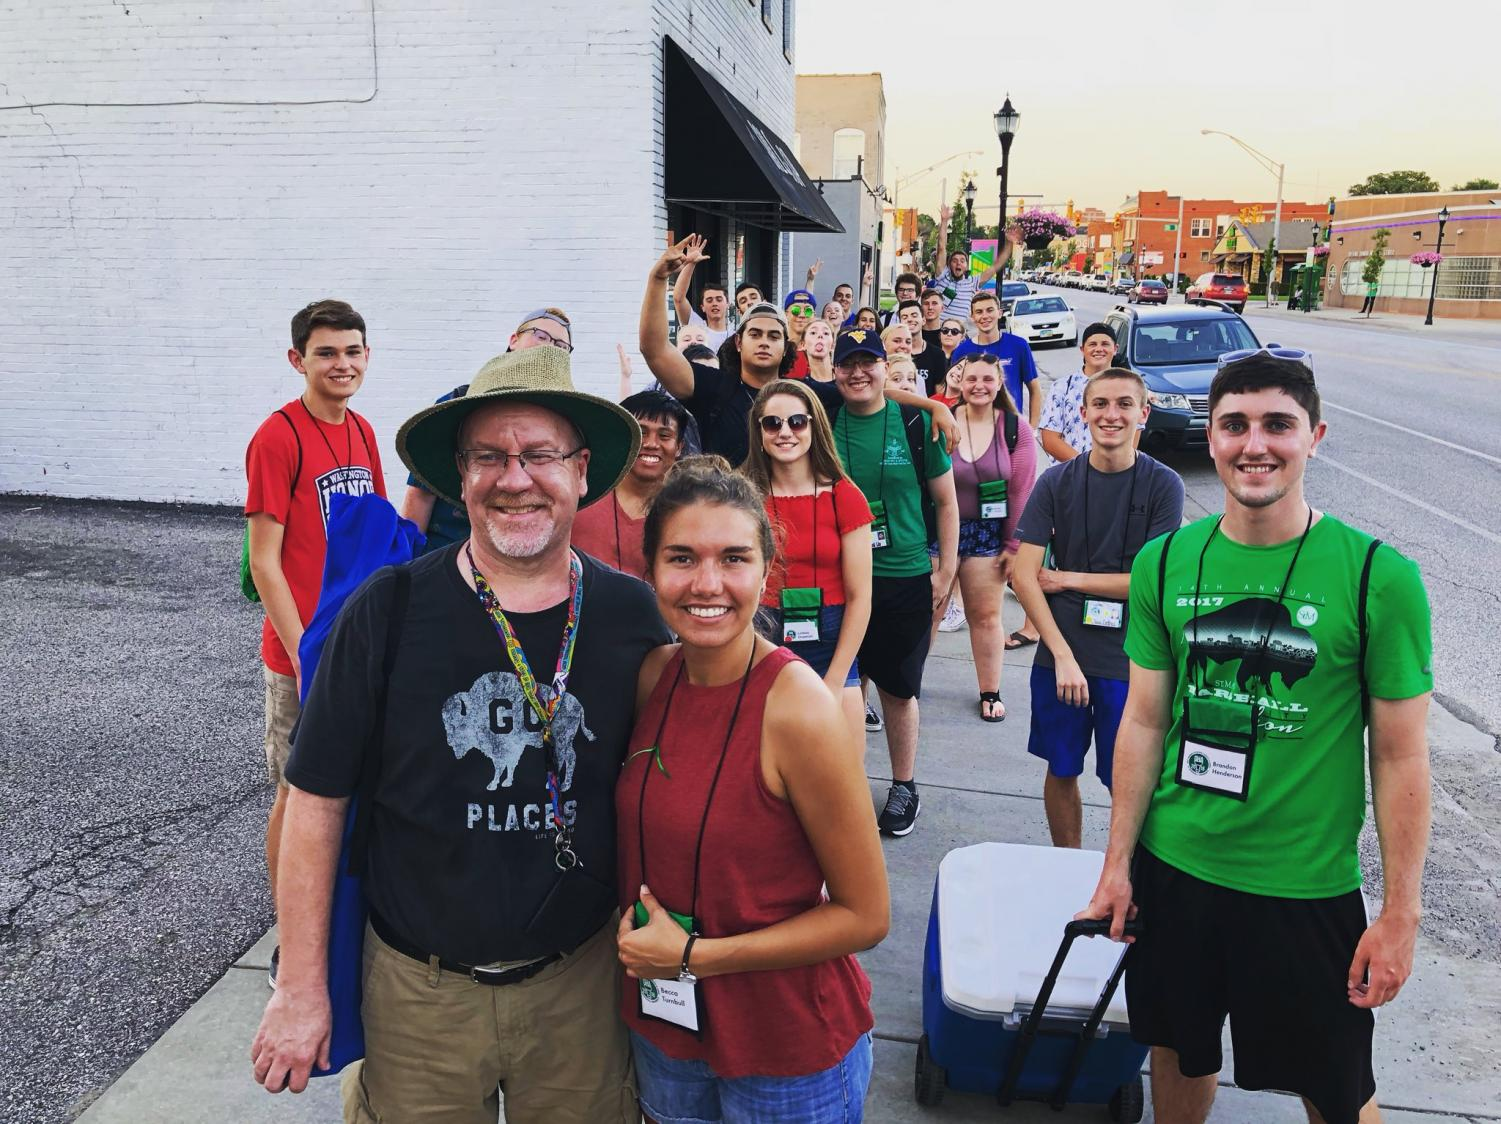 Governor's Honors Academy, led by Dan Hollis and Rebecca Turnbull, walk down Fourth Avenue to the fireworks on Tuesday, July 3.